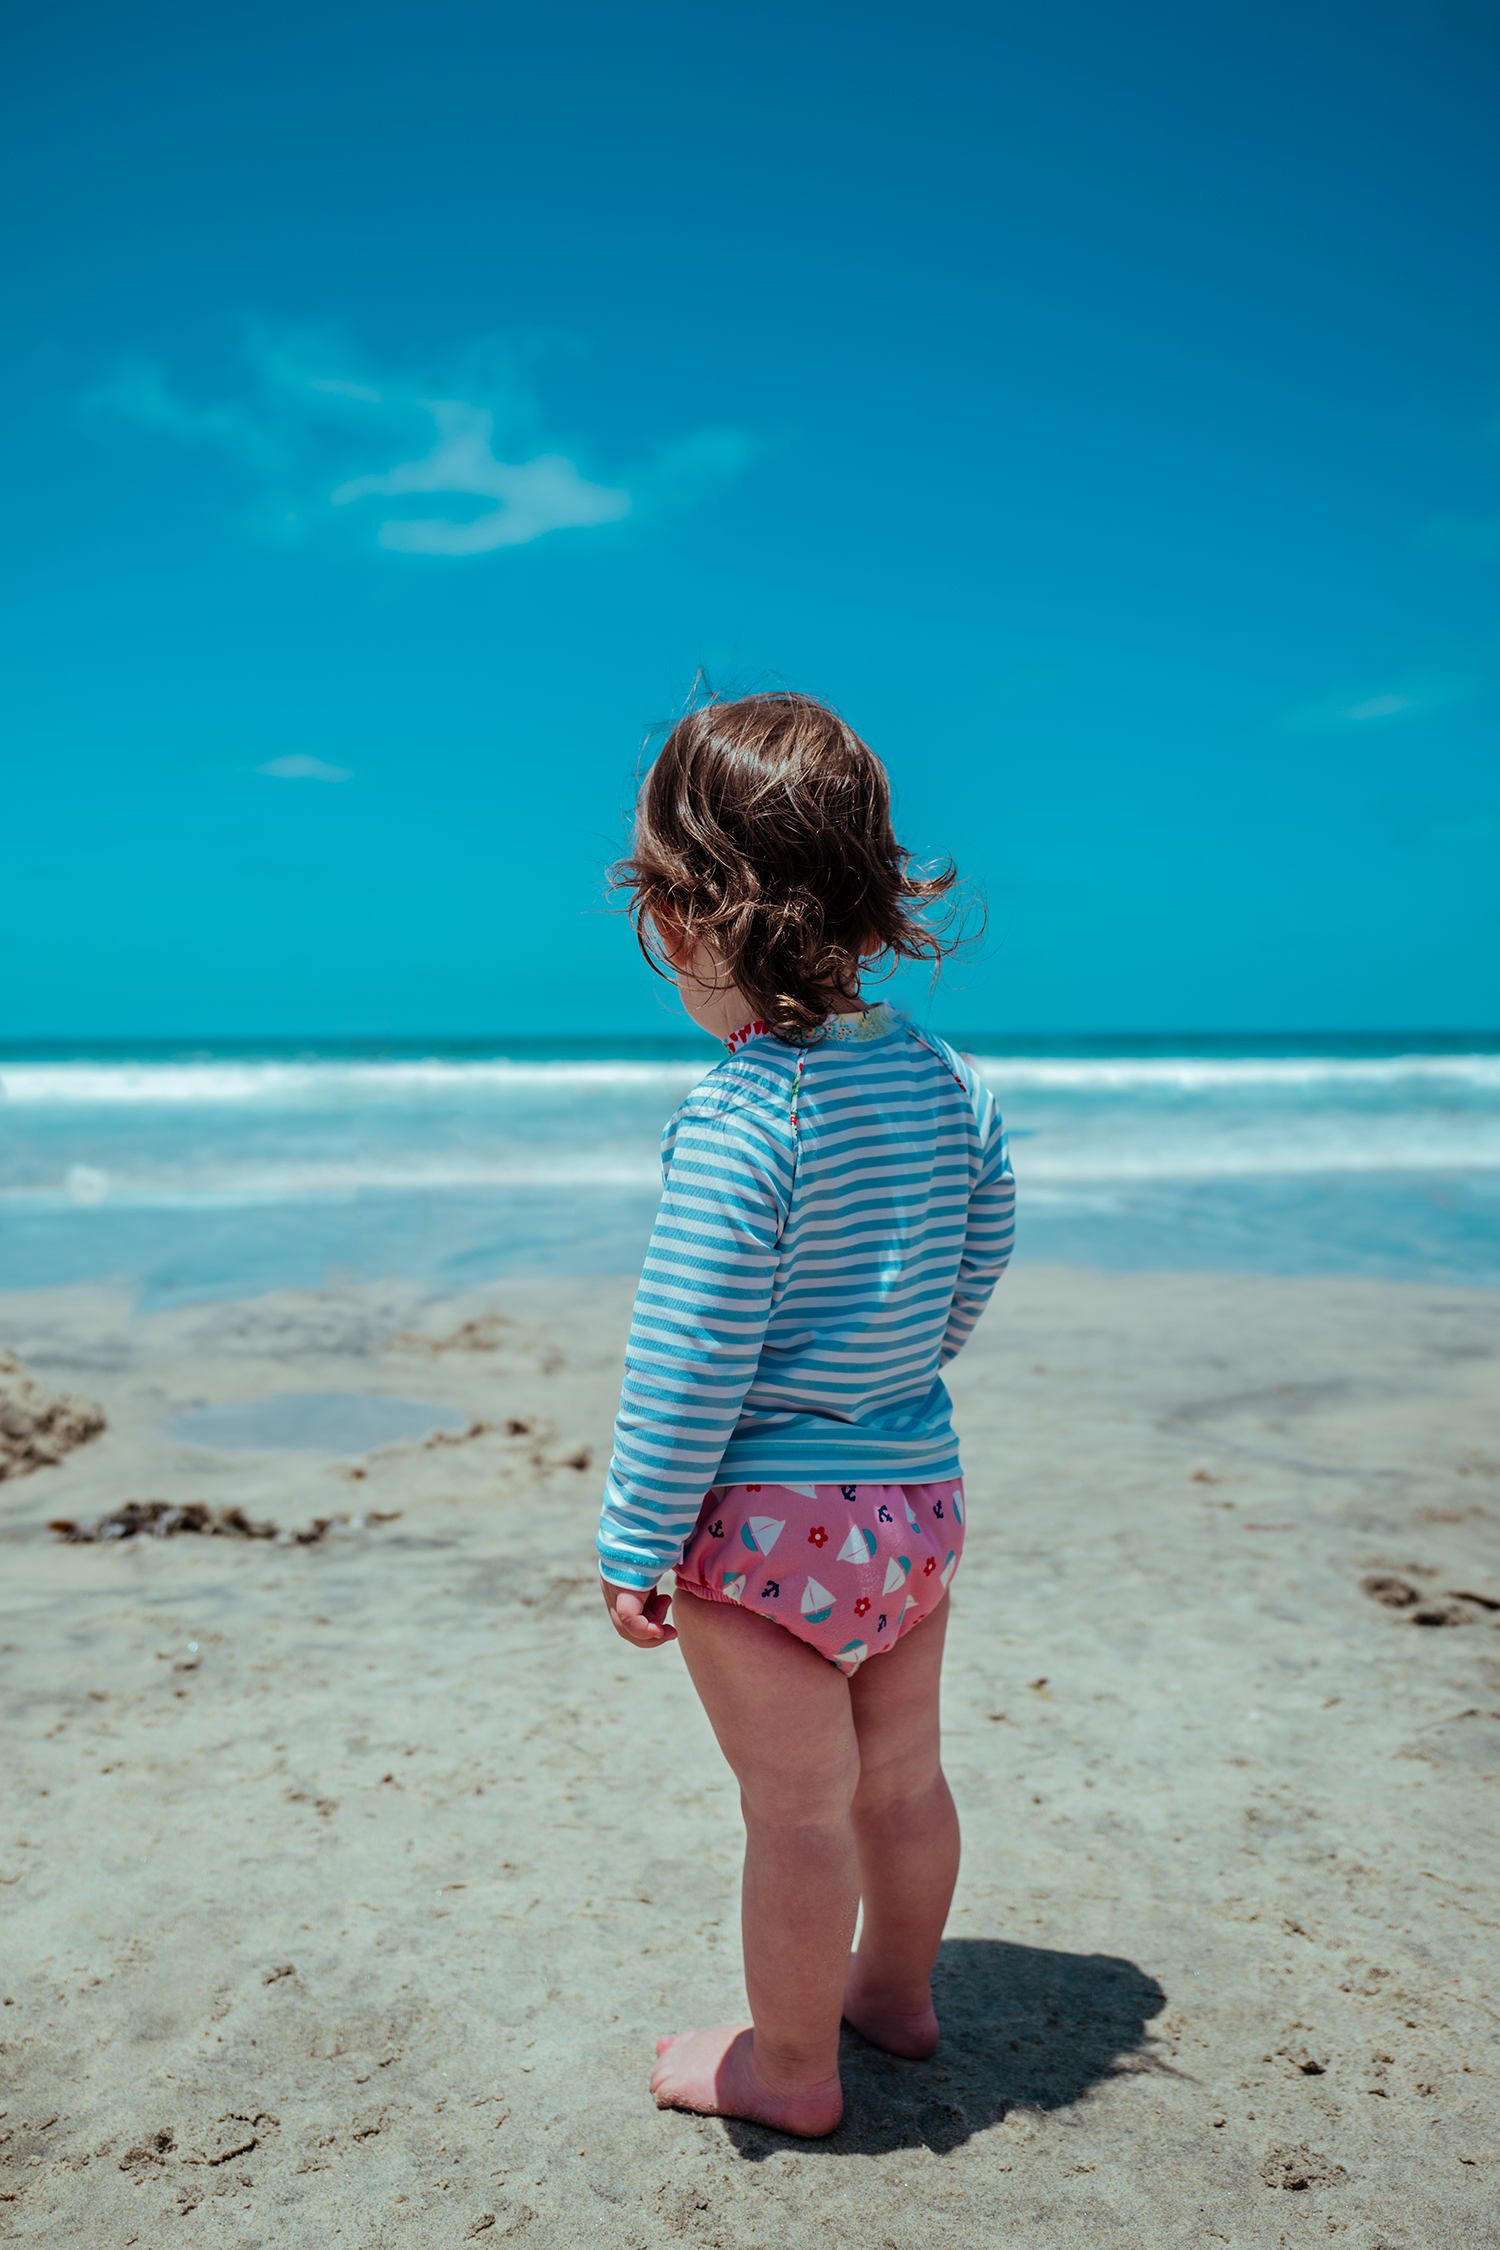 A little girl on the beach